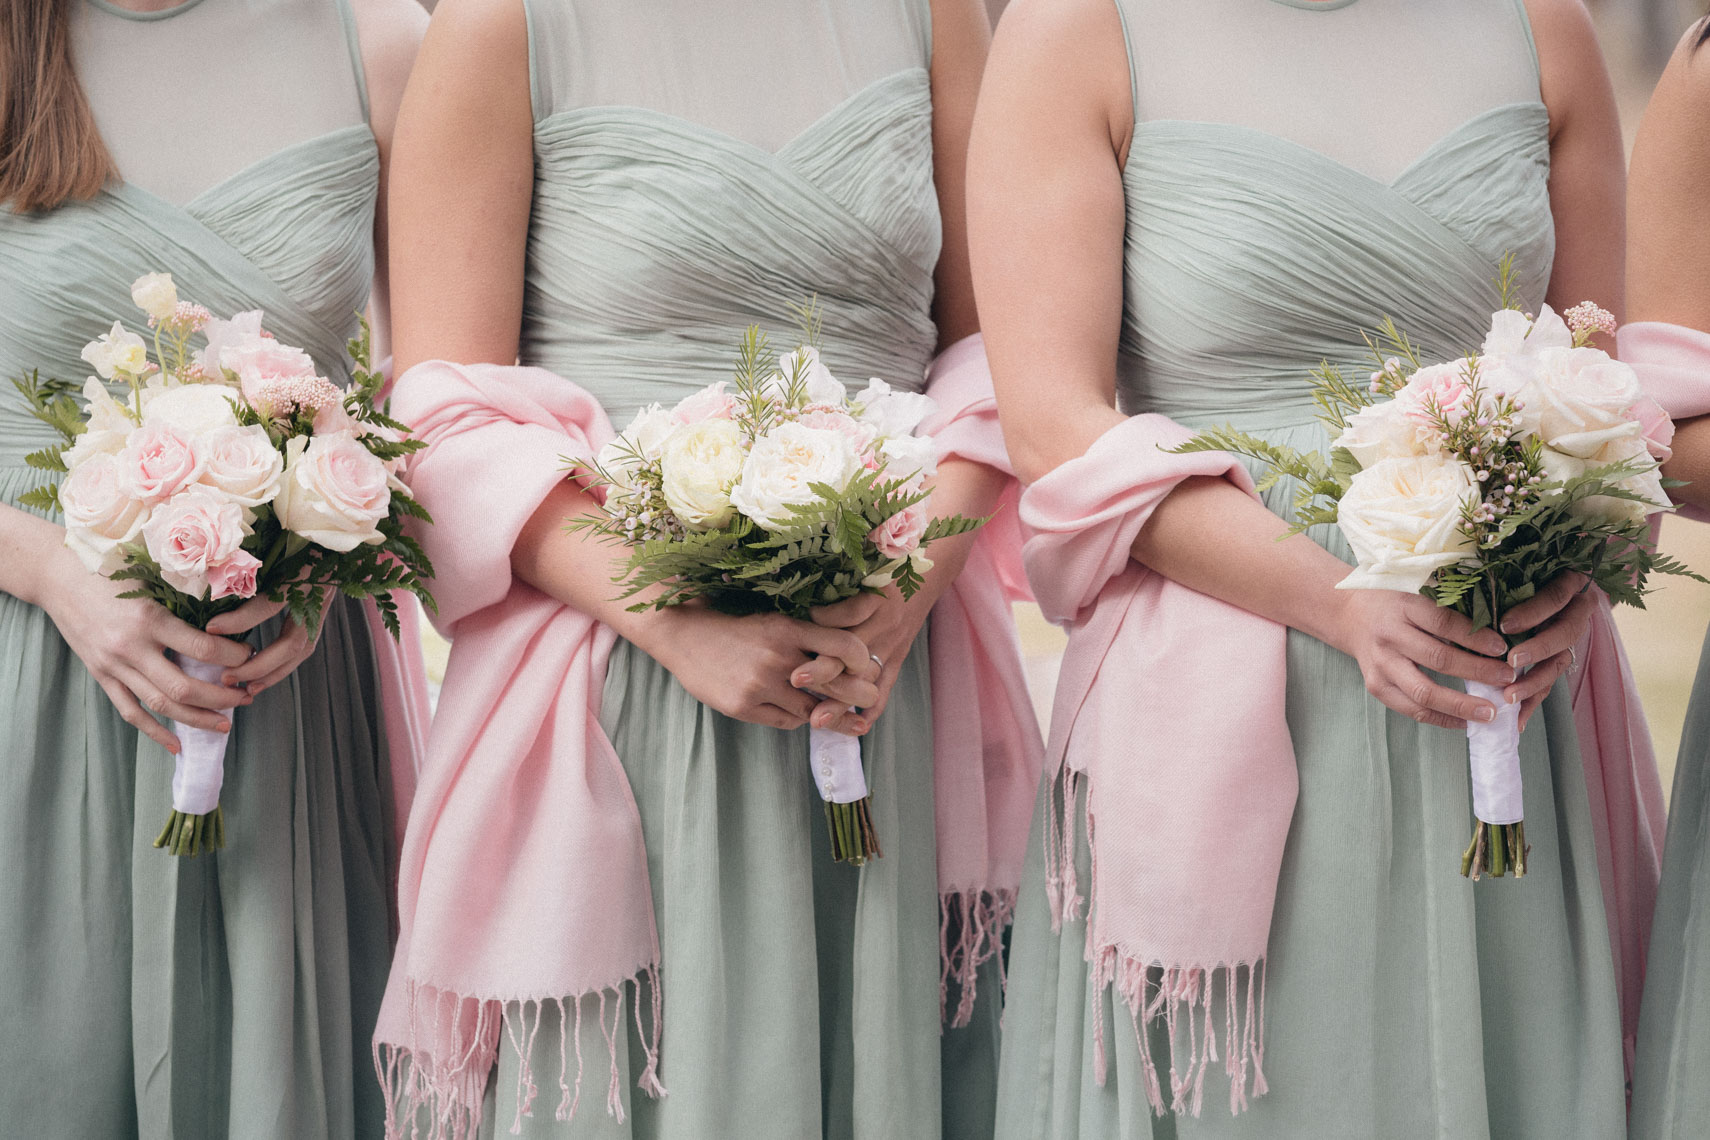 Bridesmaids dresses and bouquets during wedding in Whistler